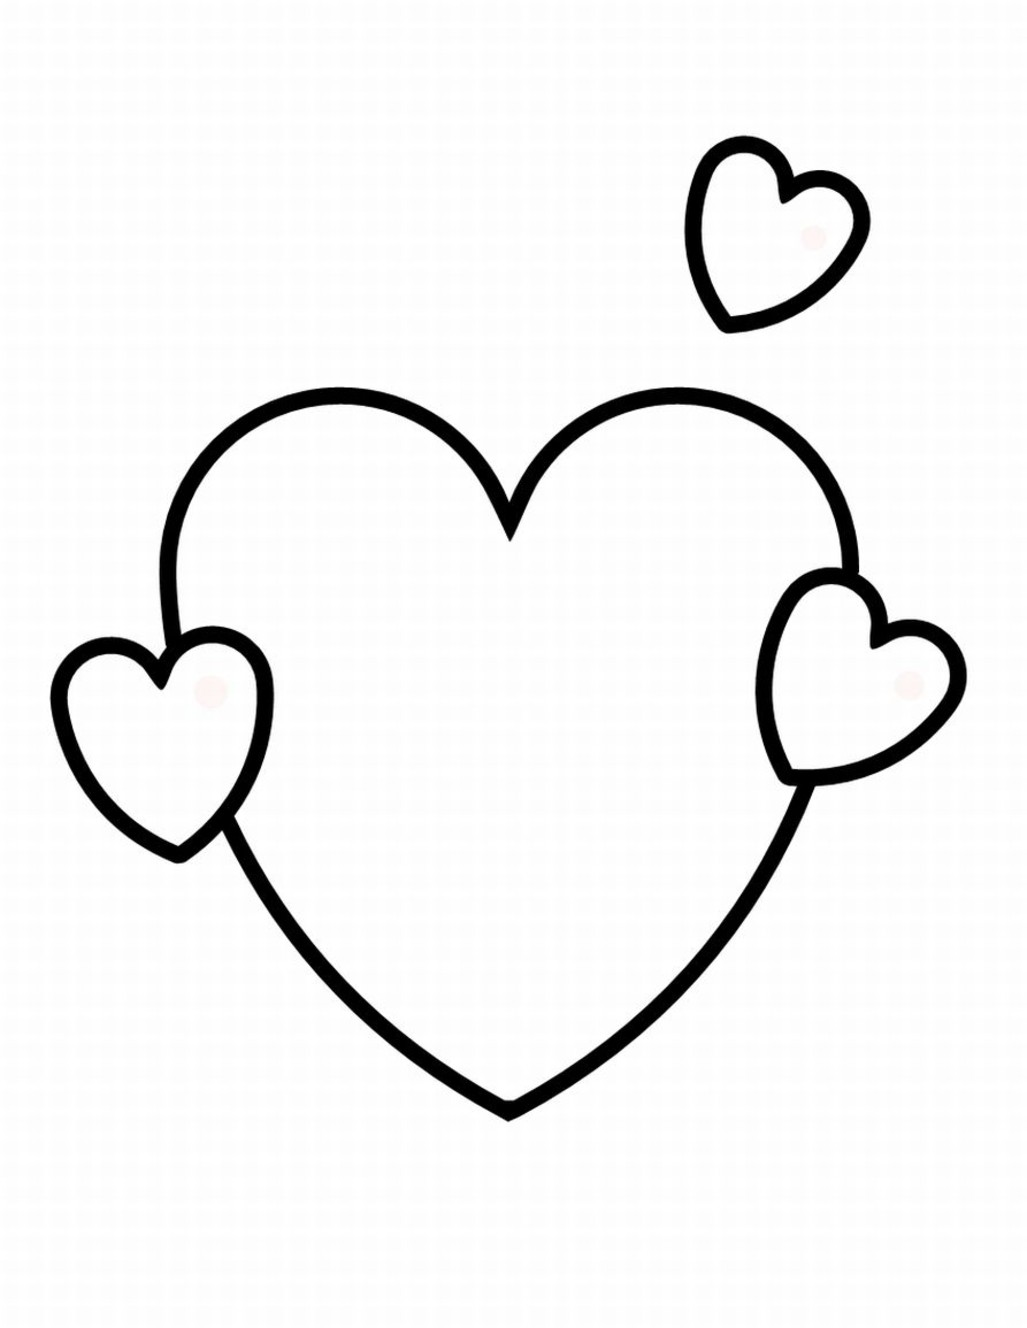 valentines day heart coloring pages heart shape coloring page getcoloringpagescom heart valentines pages coloring day